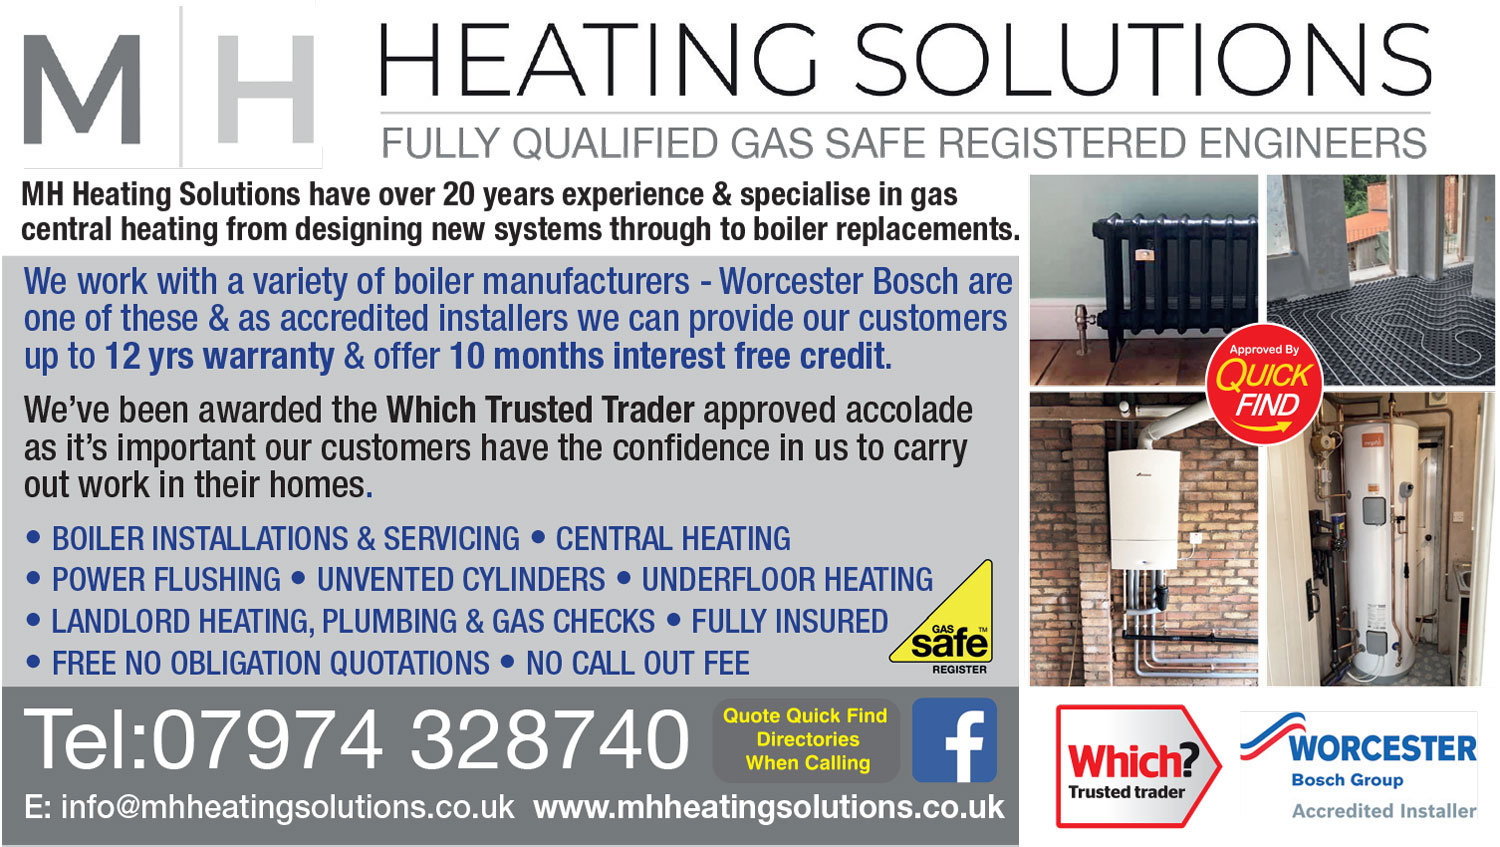 MH Heating Solutions